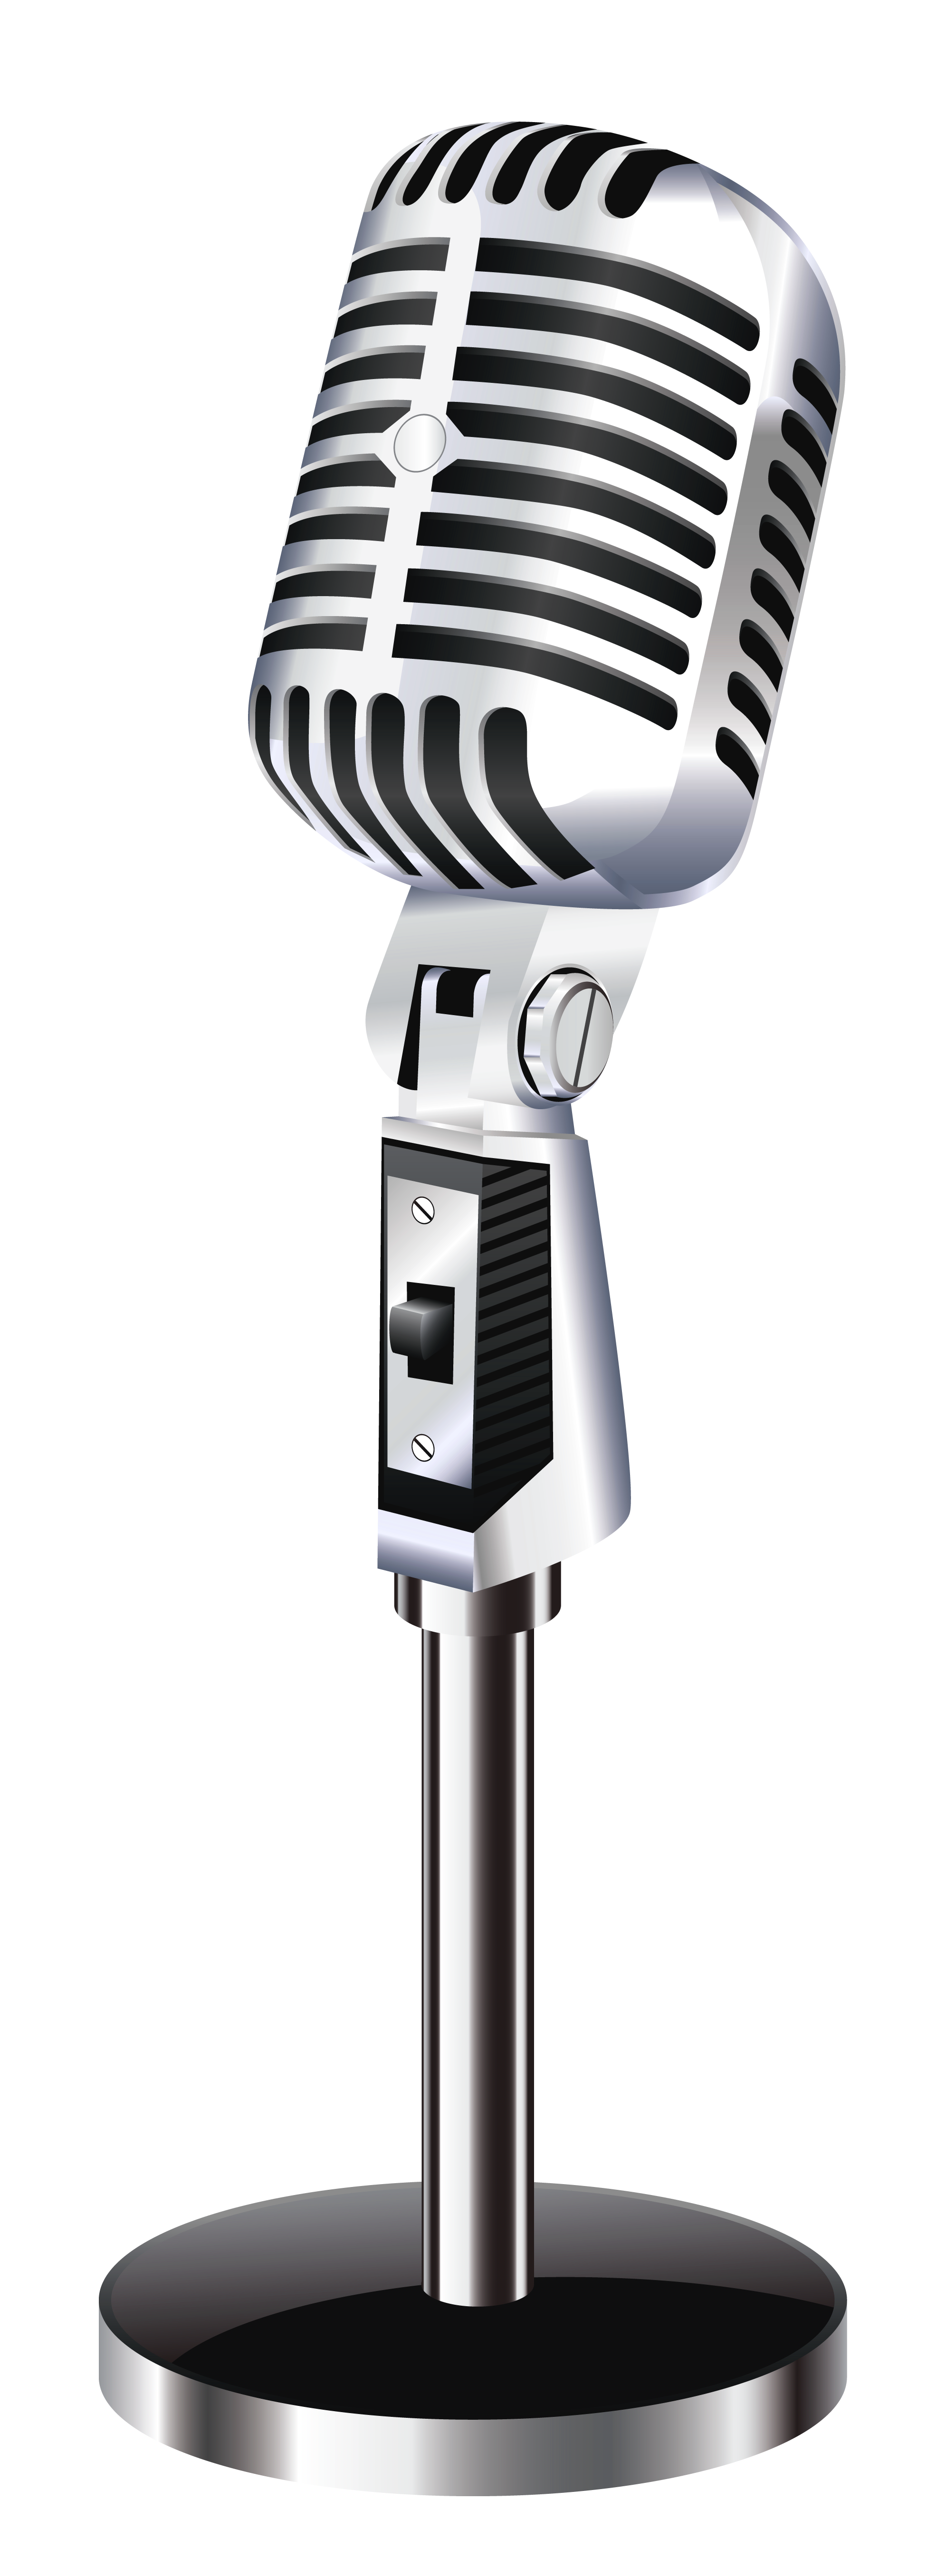 Microphone Clip Art image #19972